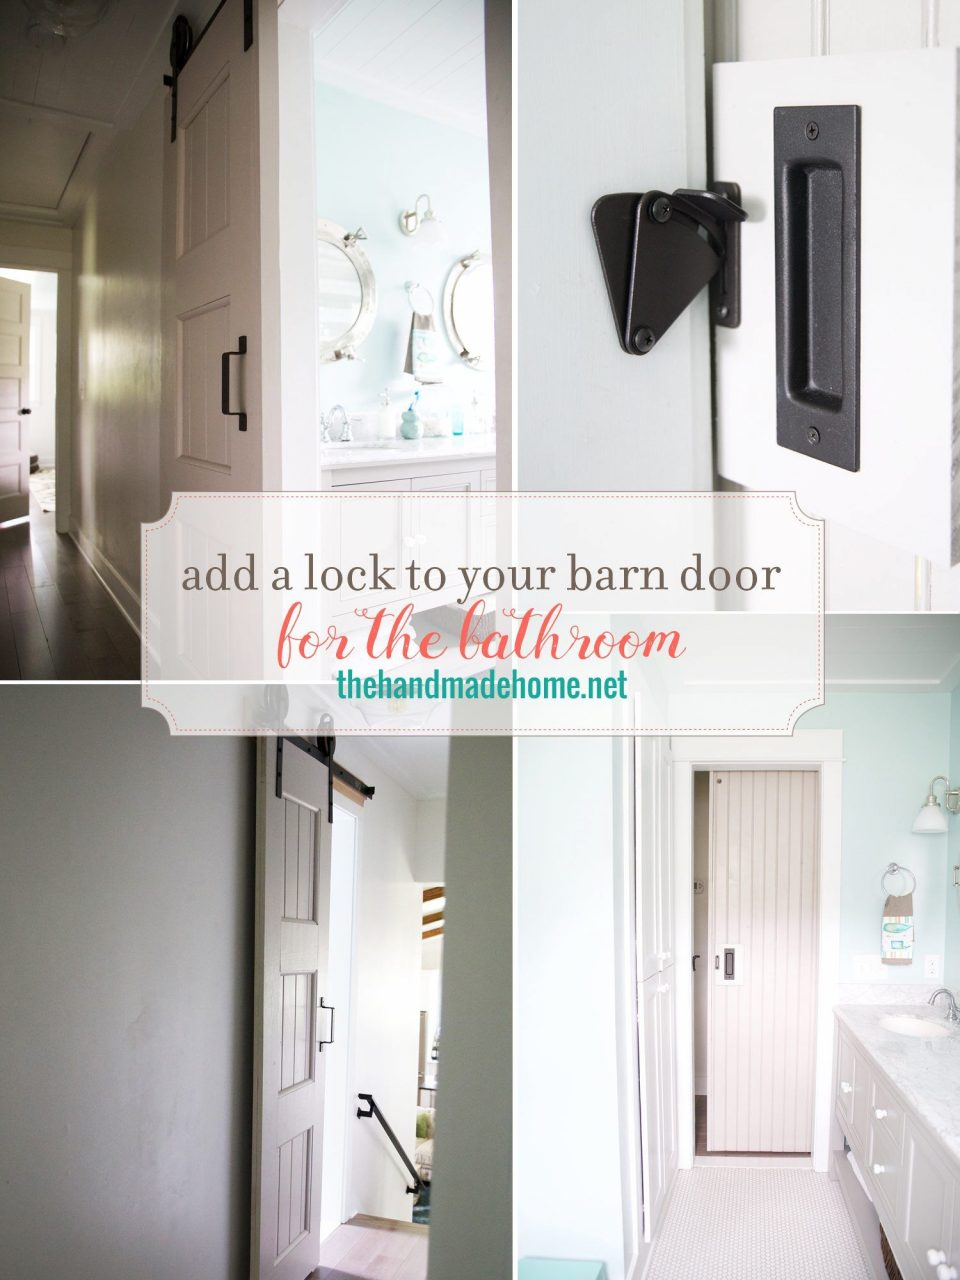 Diy Add A Lock To A Barn Door Bathrooms Bathroom Barn Door Barn